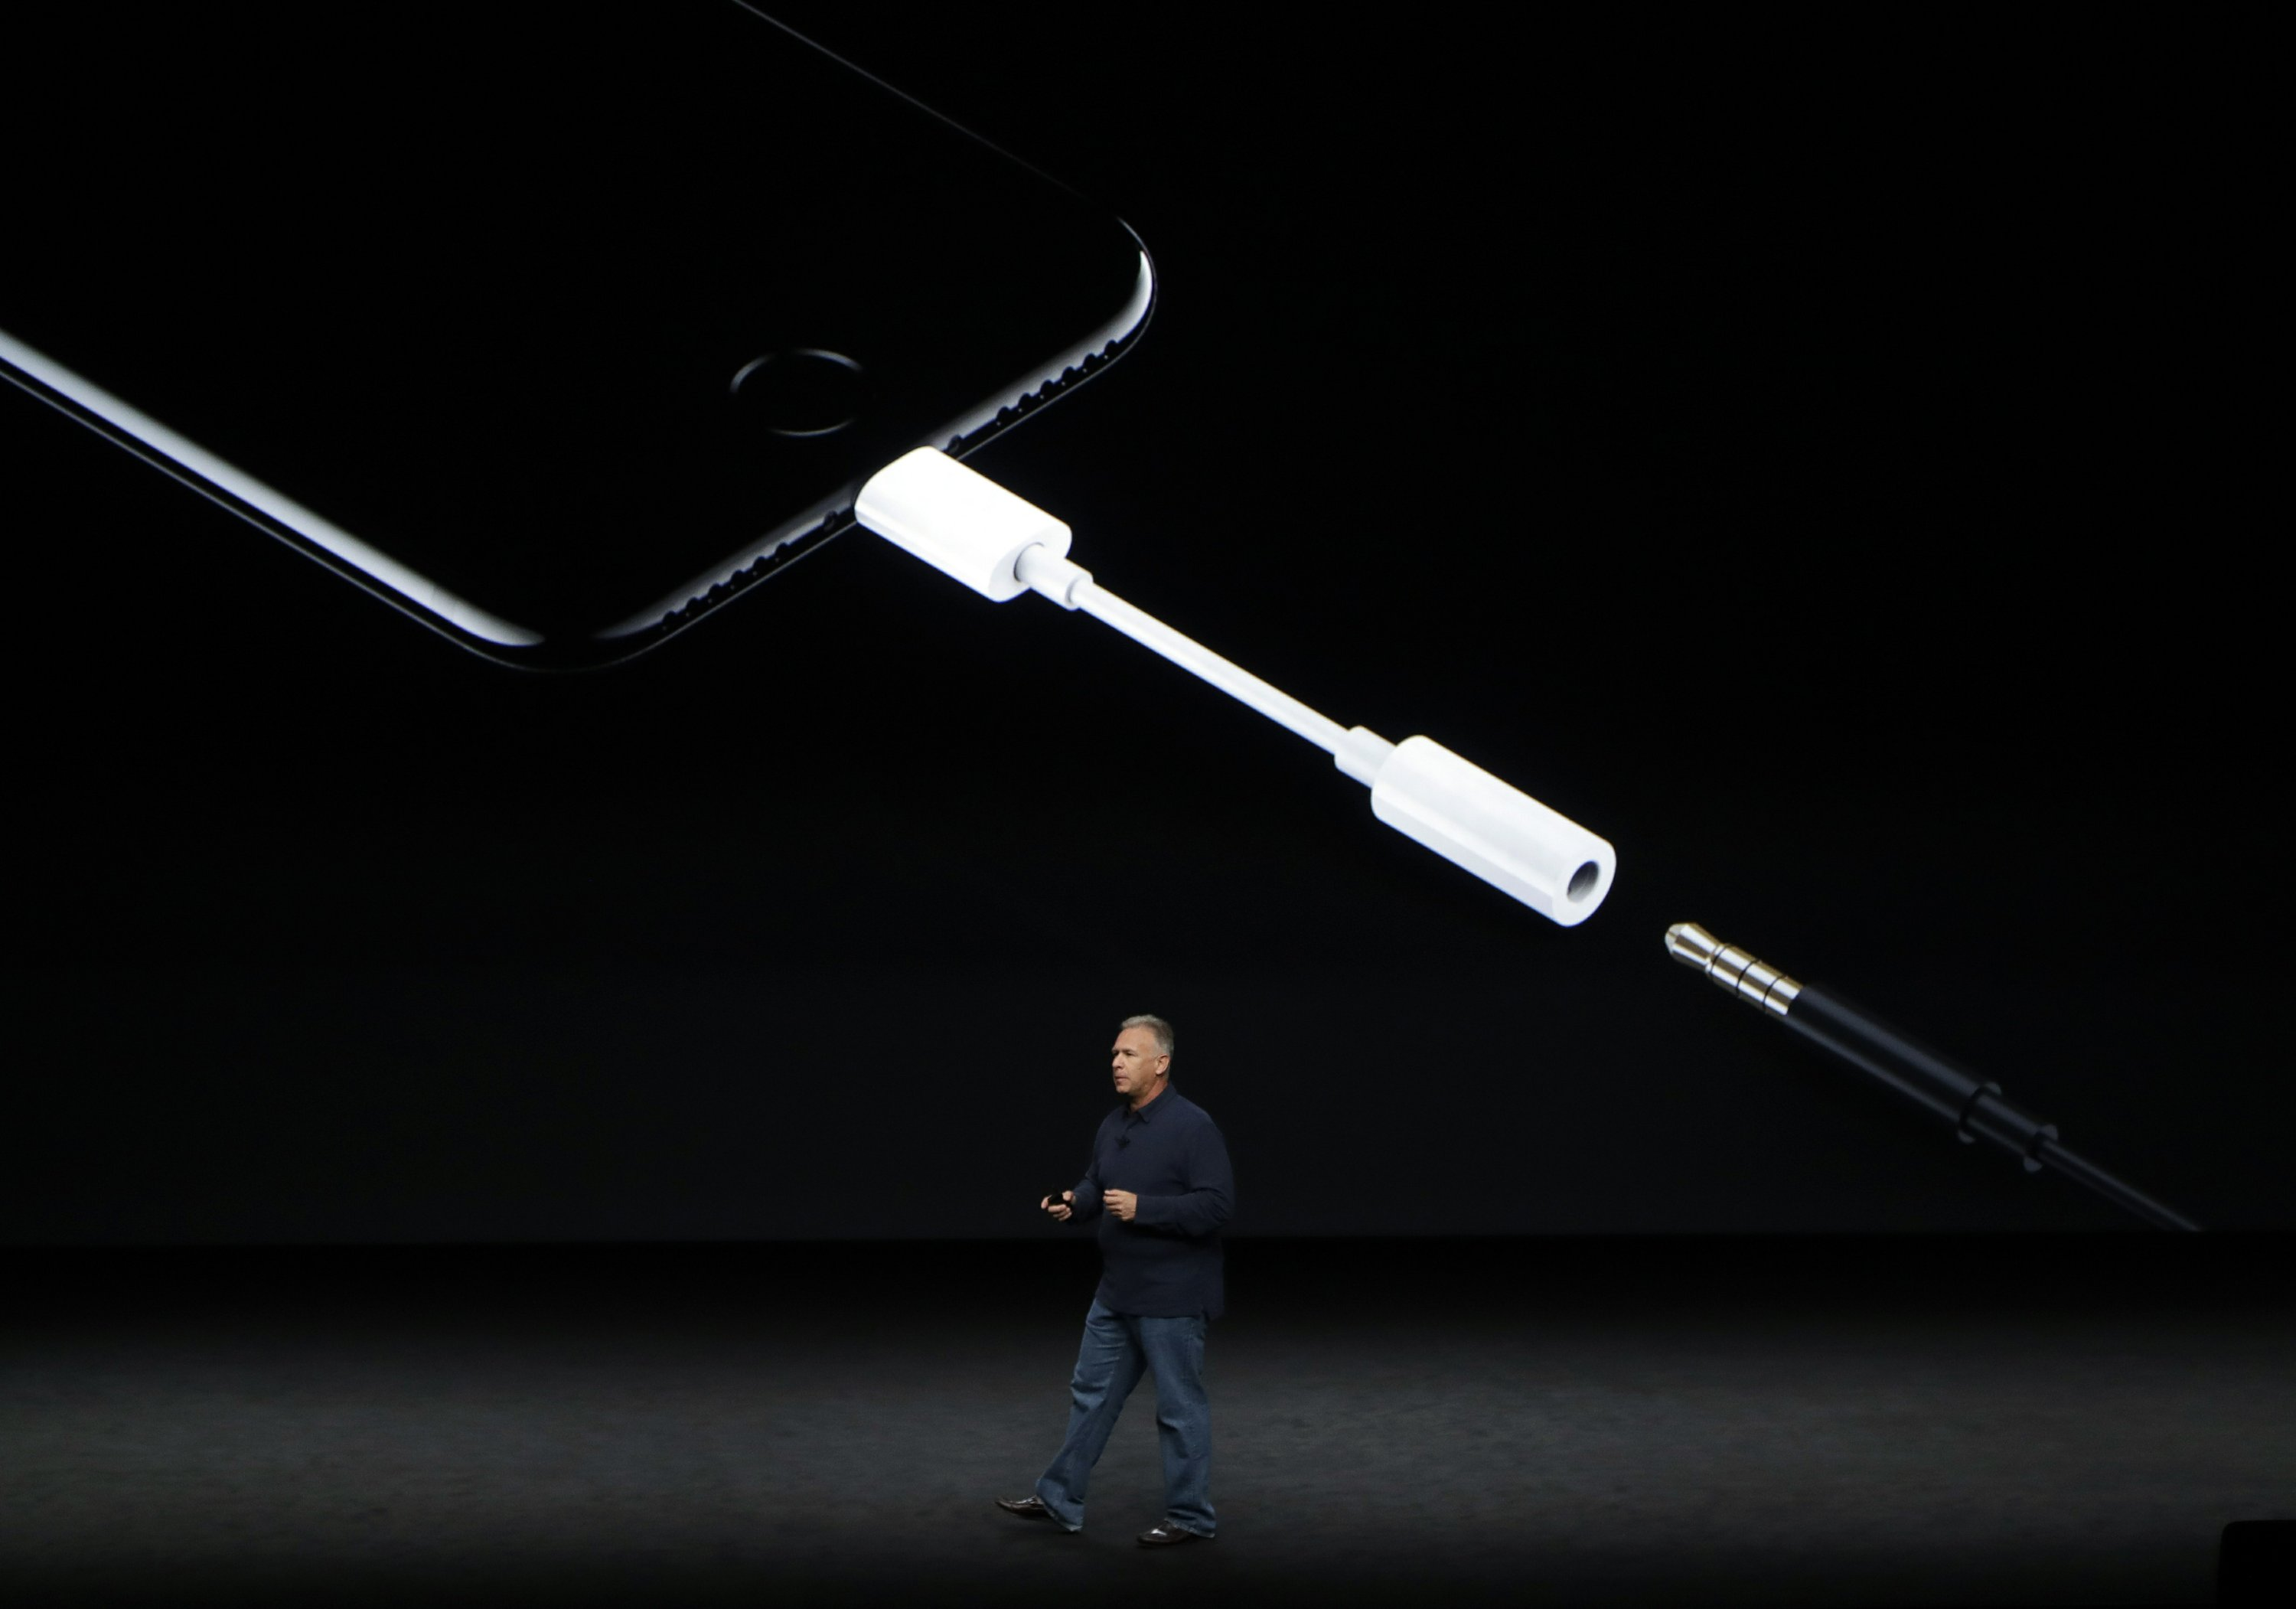 Say goodbye to the iPhone's headphone jack